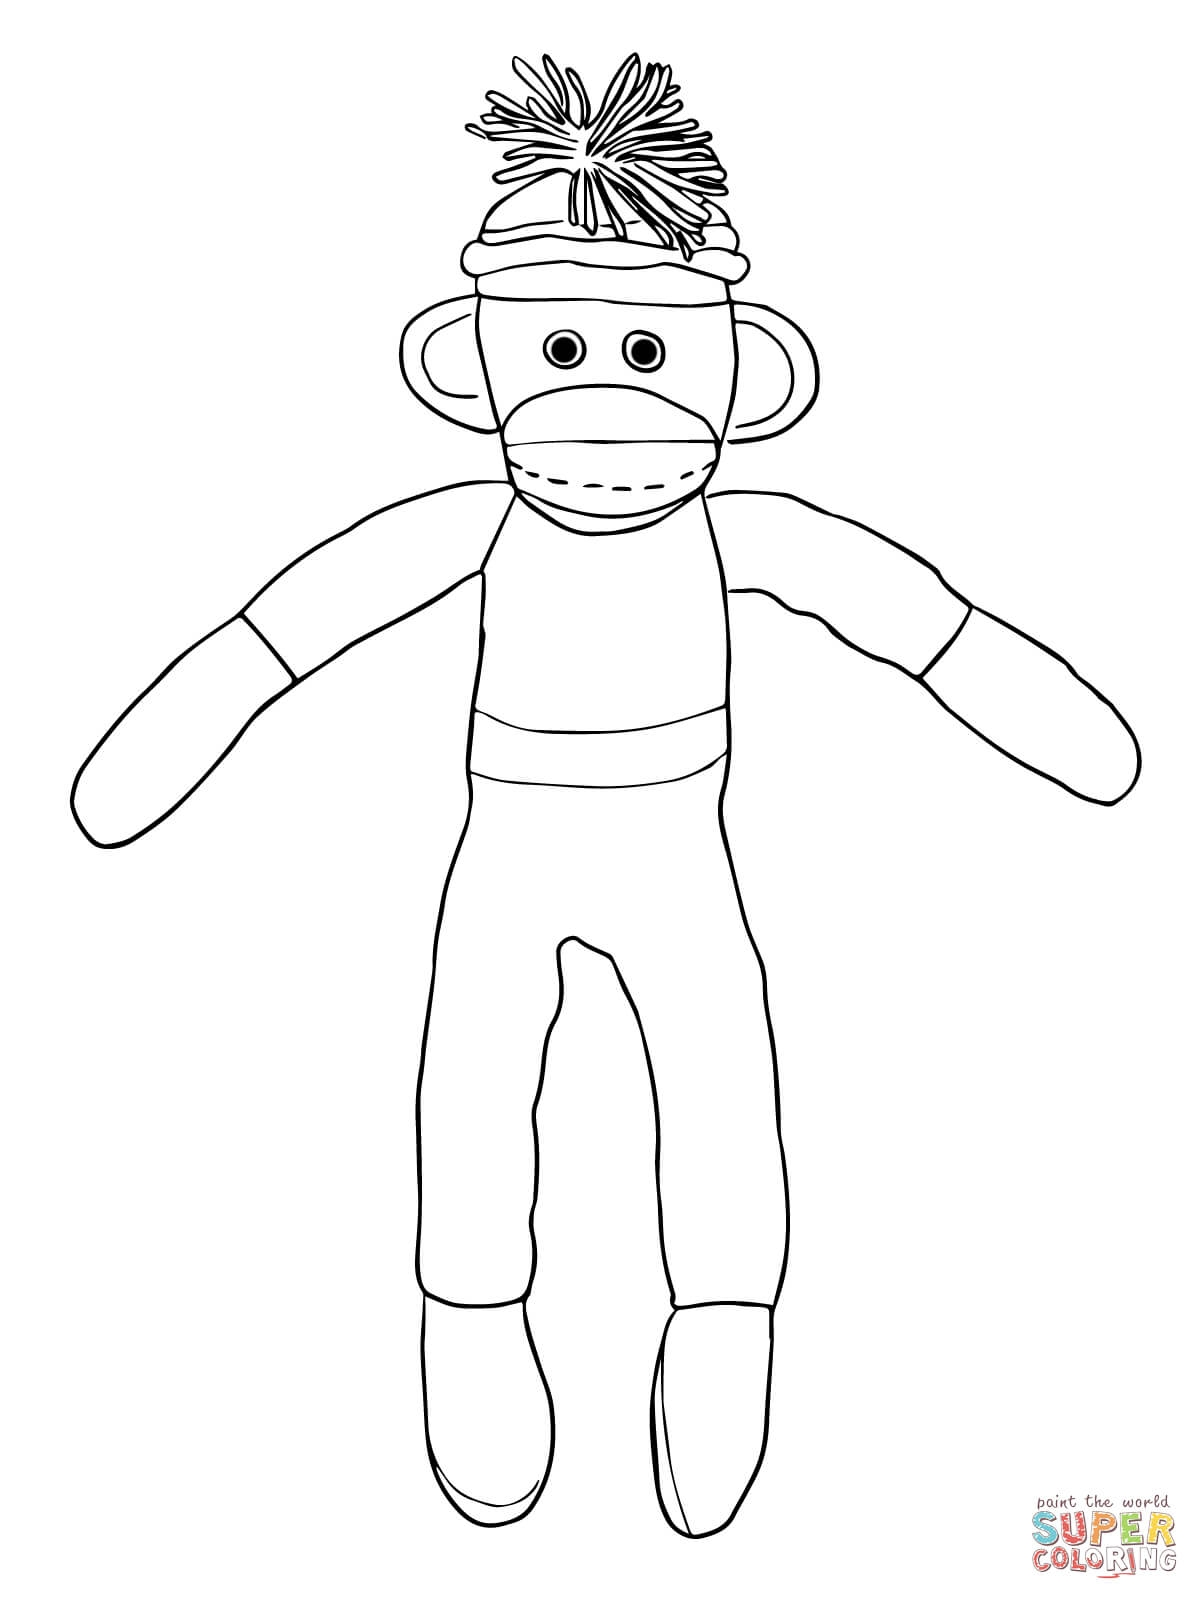 28 socks Coloring Page Pictures FREE COLORING PAGES Part 2